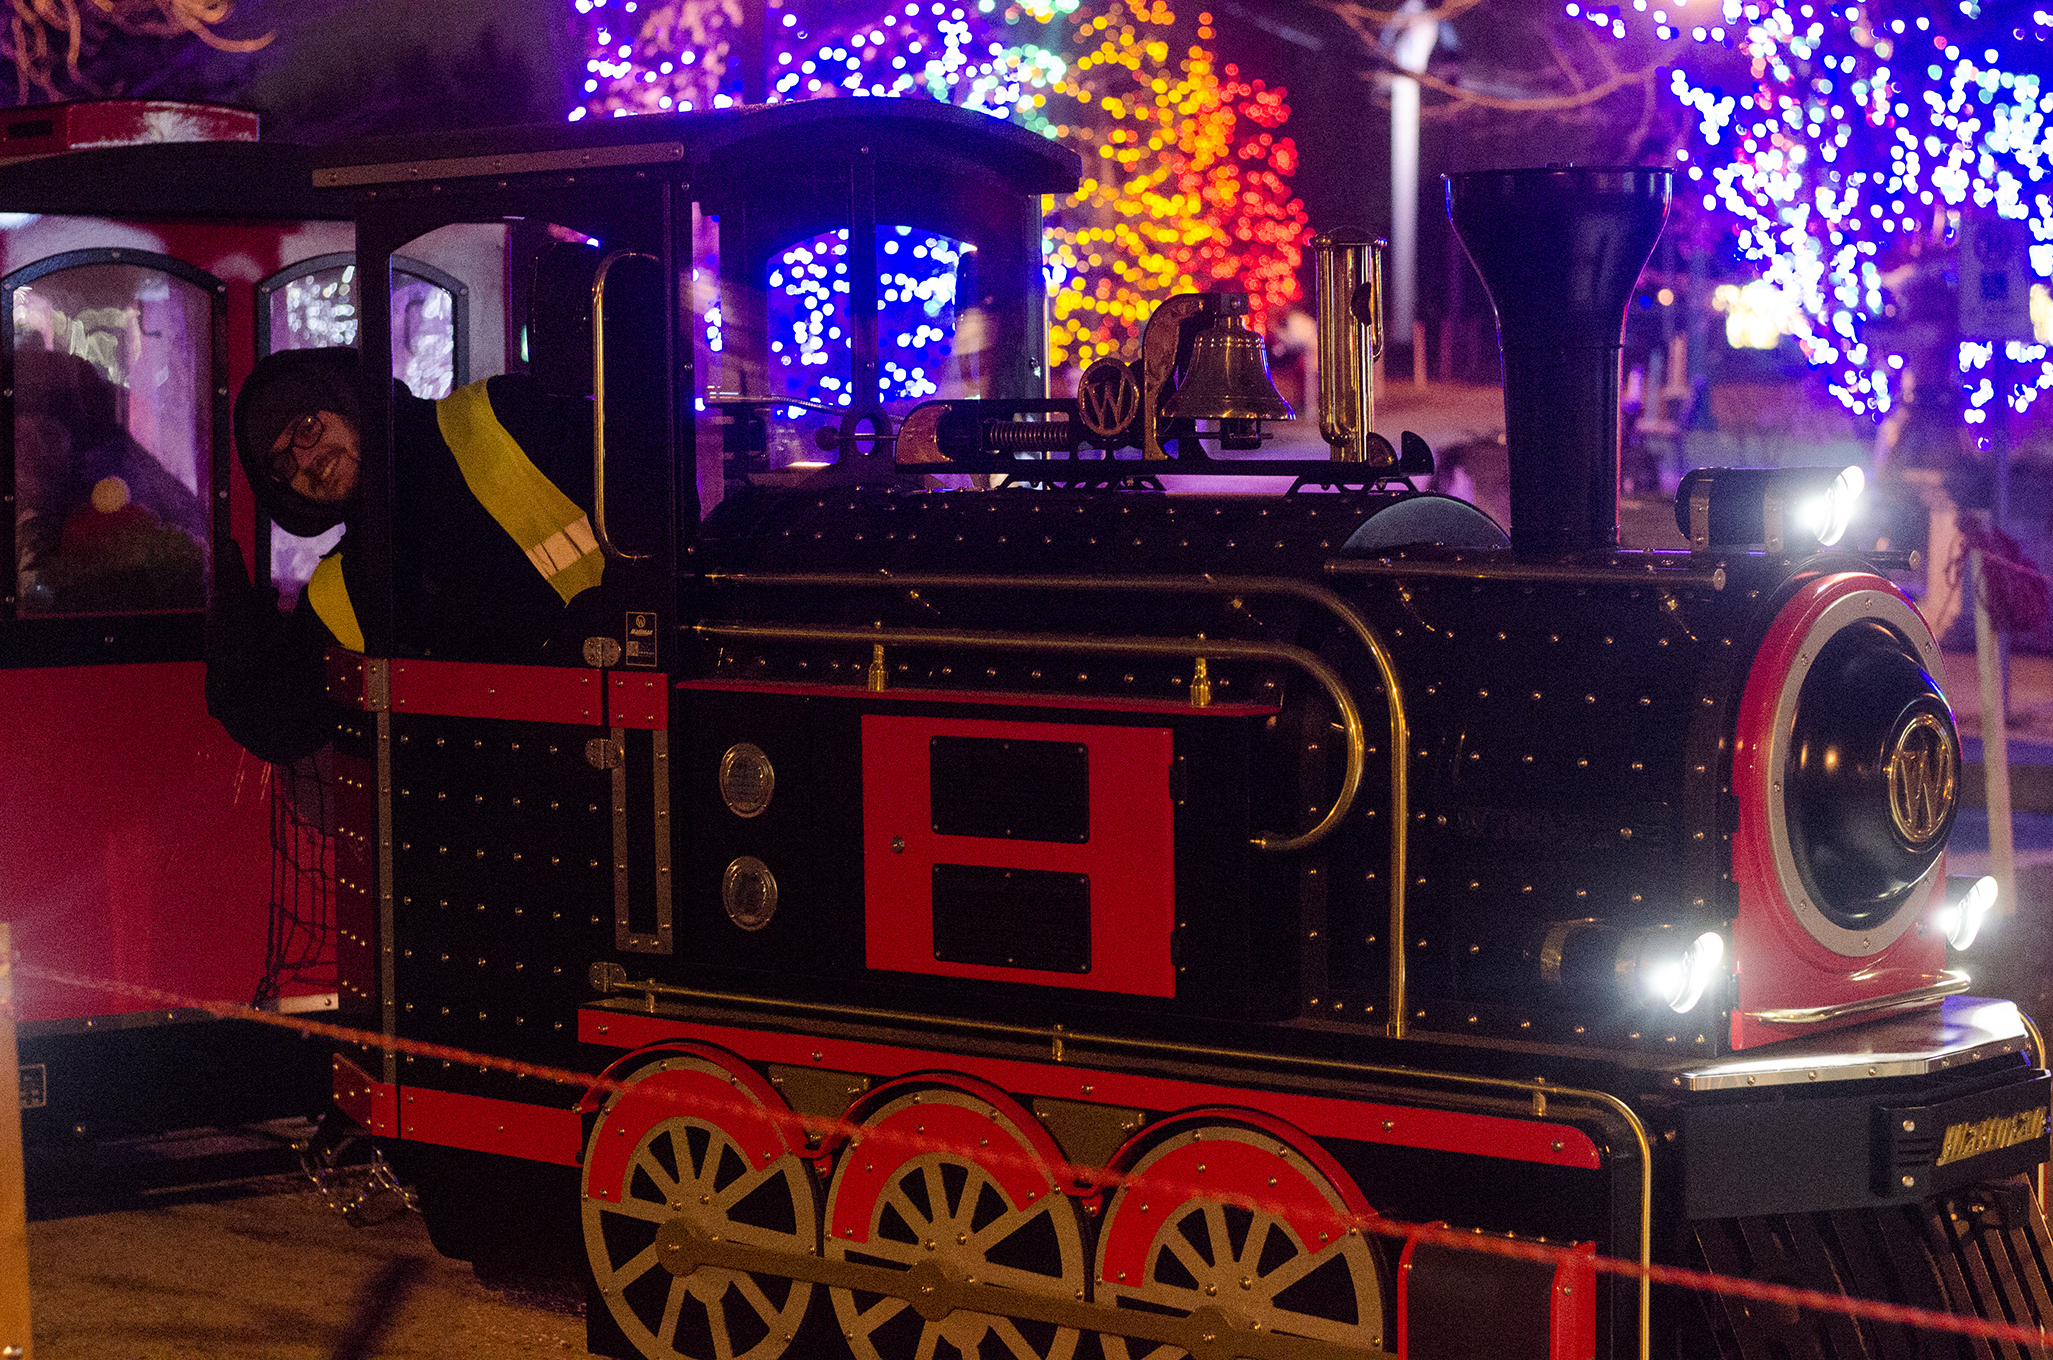 All aboard the holiday train at Bright Lights Windsor!